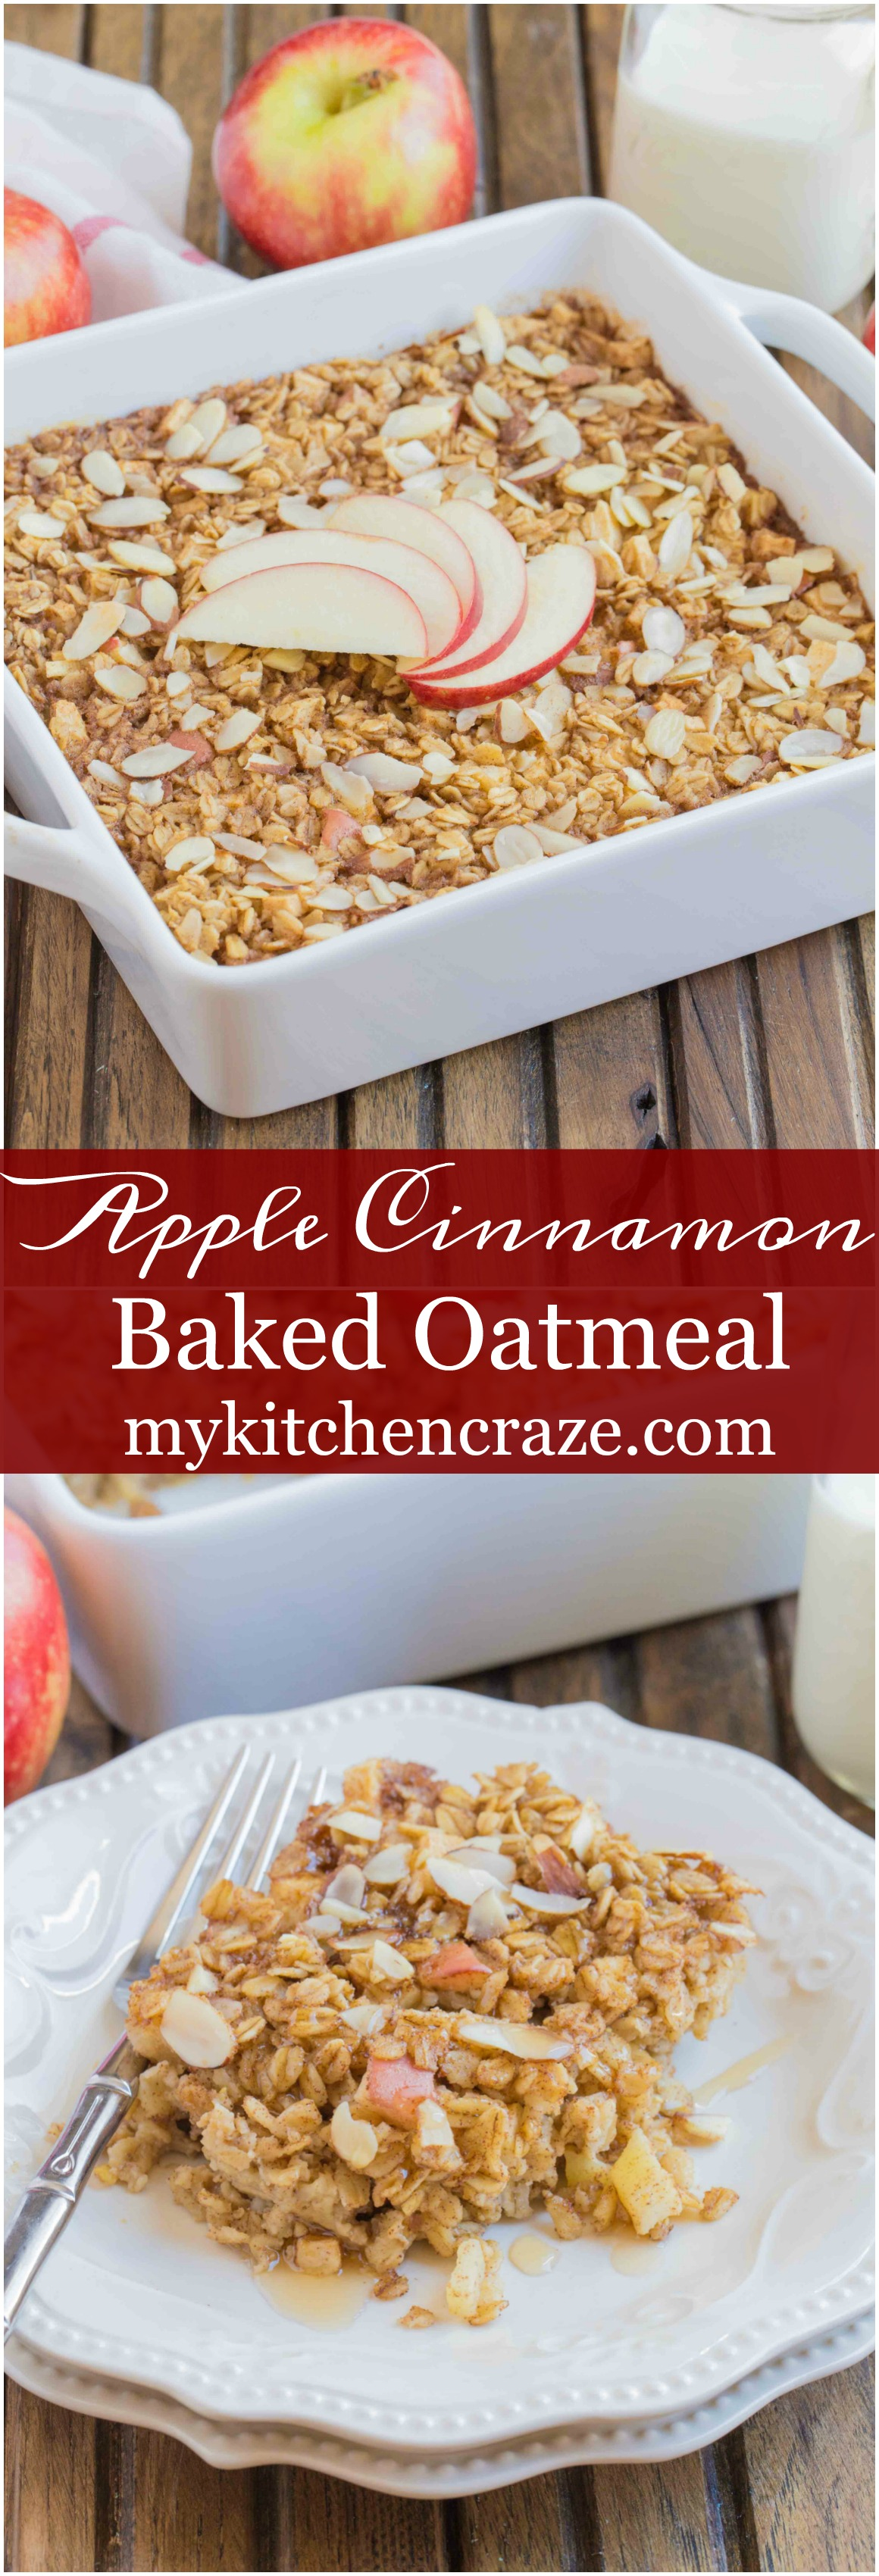 Apple Cinnamon Baked Oatmeal ~ mykitchencraze.com ~ This baked oatmeal ...